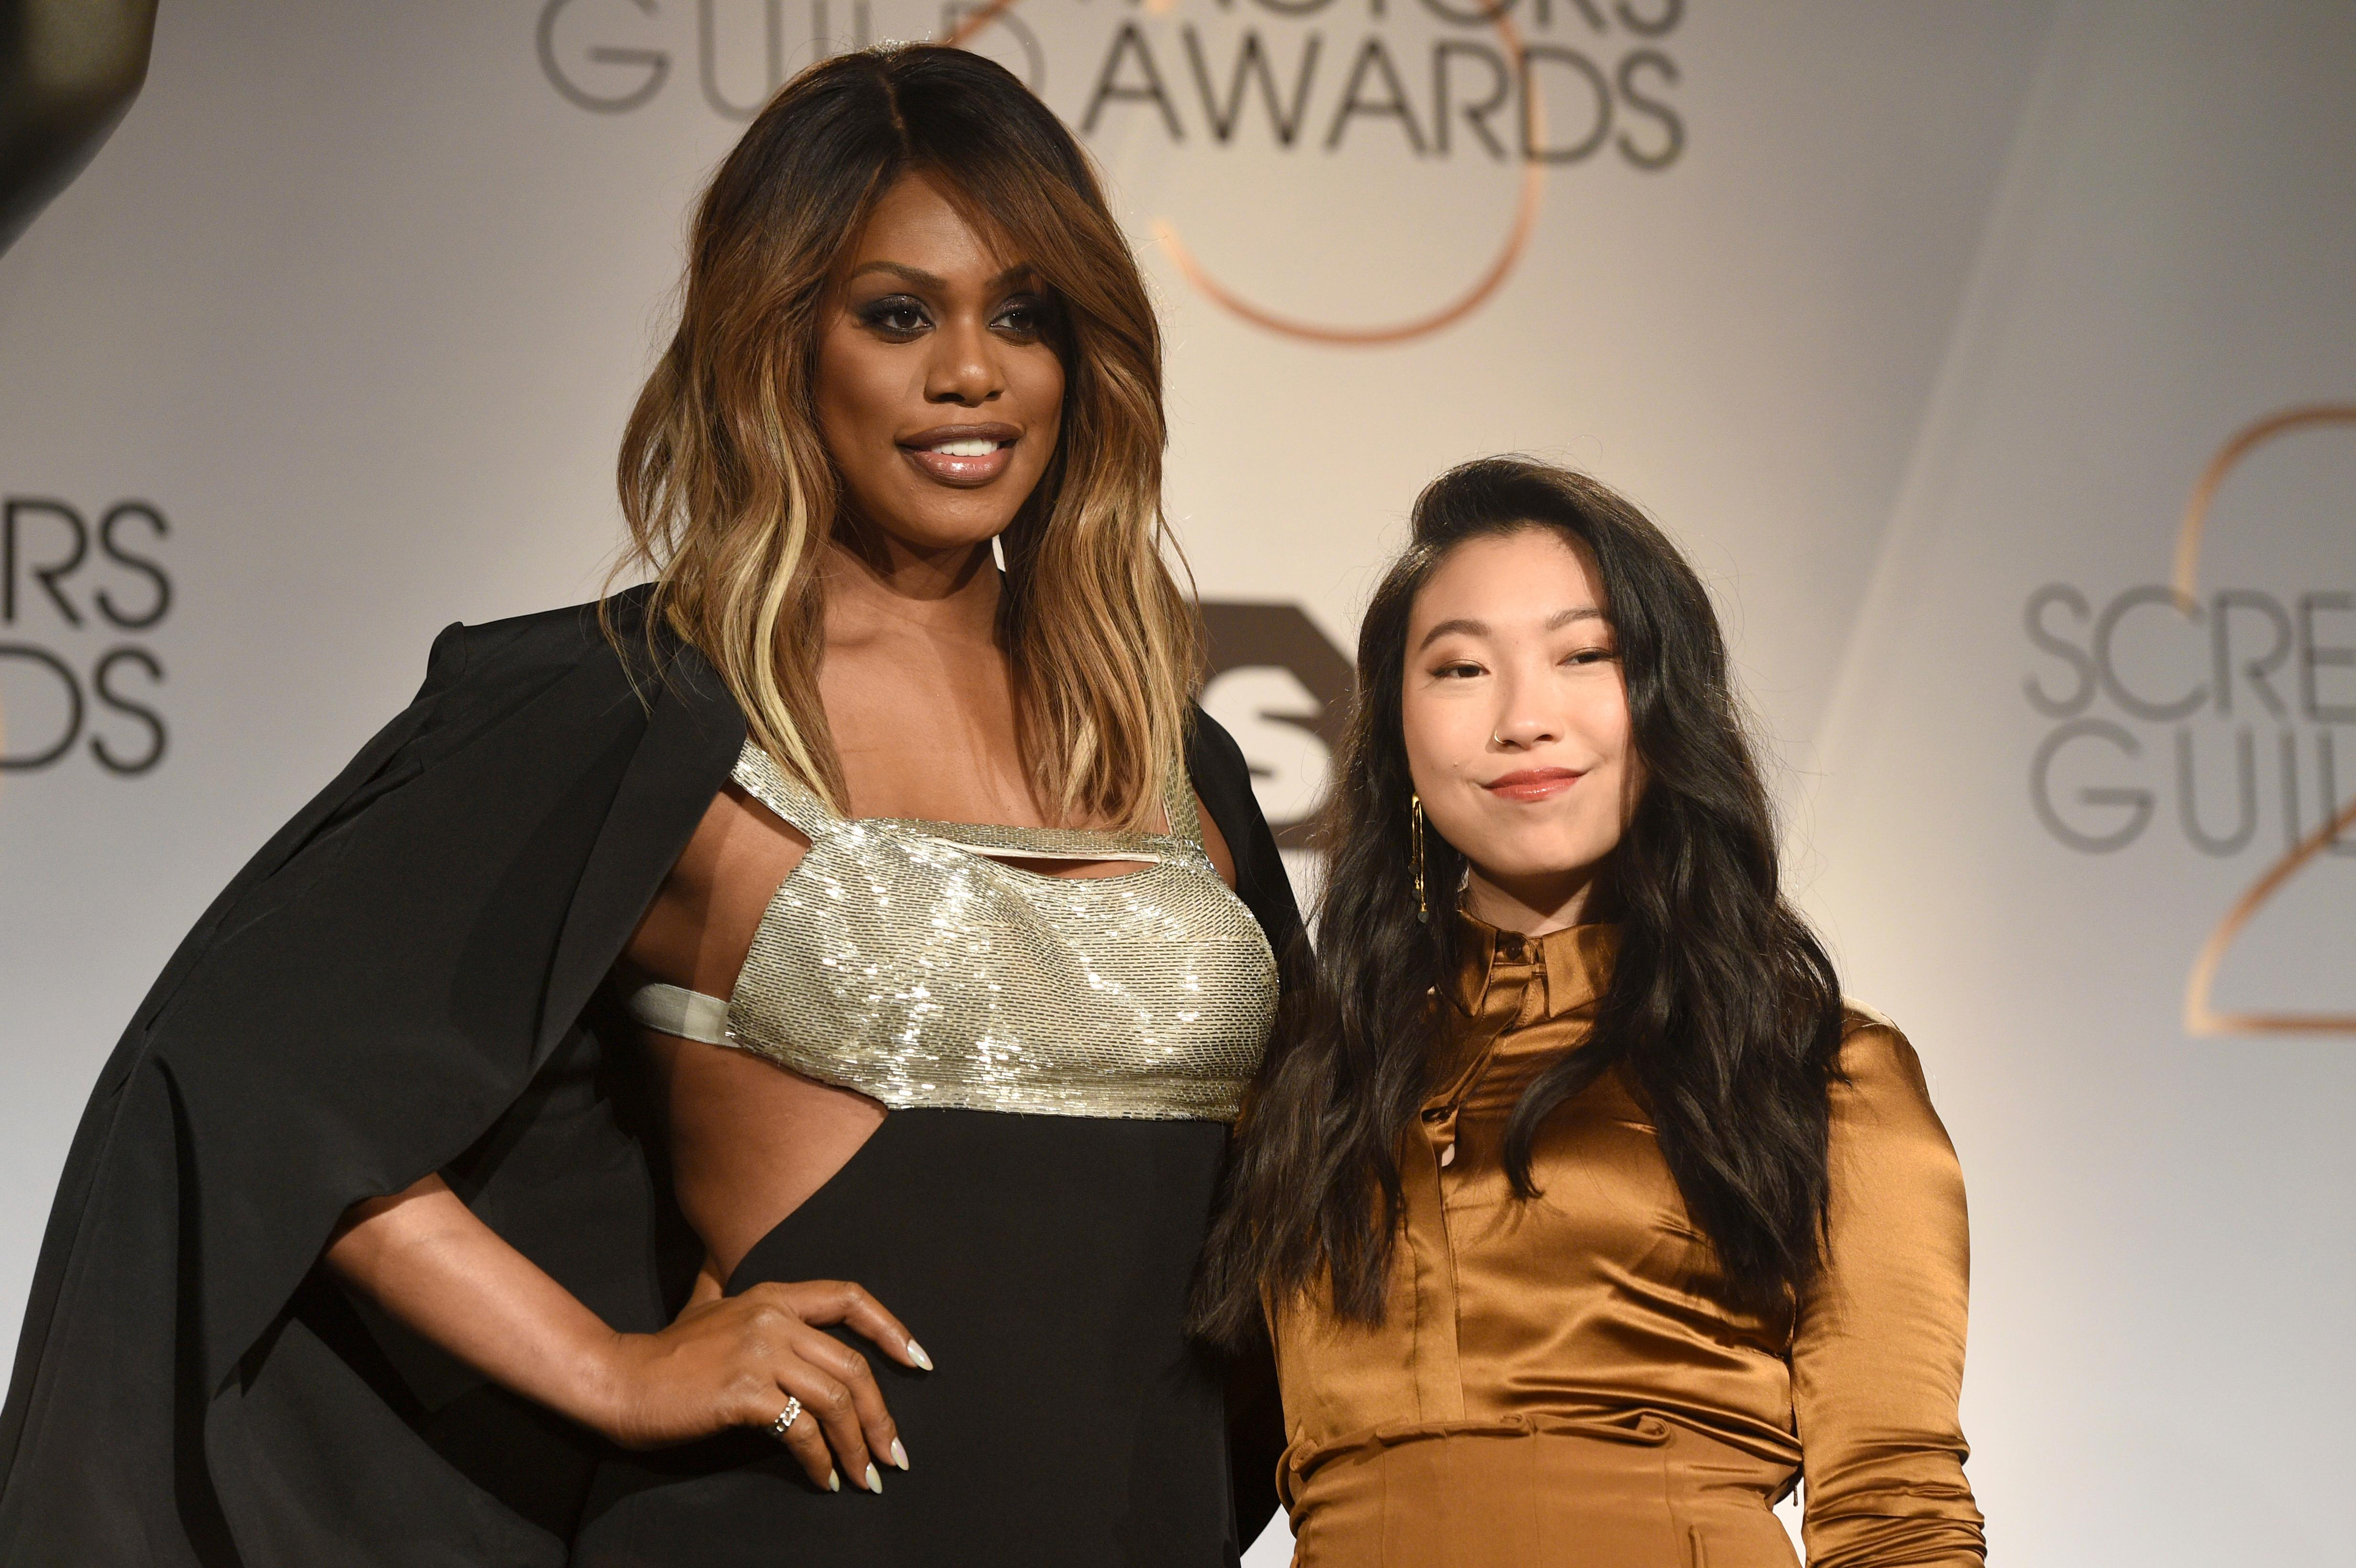 Laverne Cox, left, and Awkwafina pose following the nominations announcement for the 25th annual Screen Actors Guild Awards at the Pacific Design Center on Wednesday, Dec. 12, 2018, in West Hollywood, Calif. (Photo by Chris Pizzello/Invision/AP)